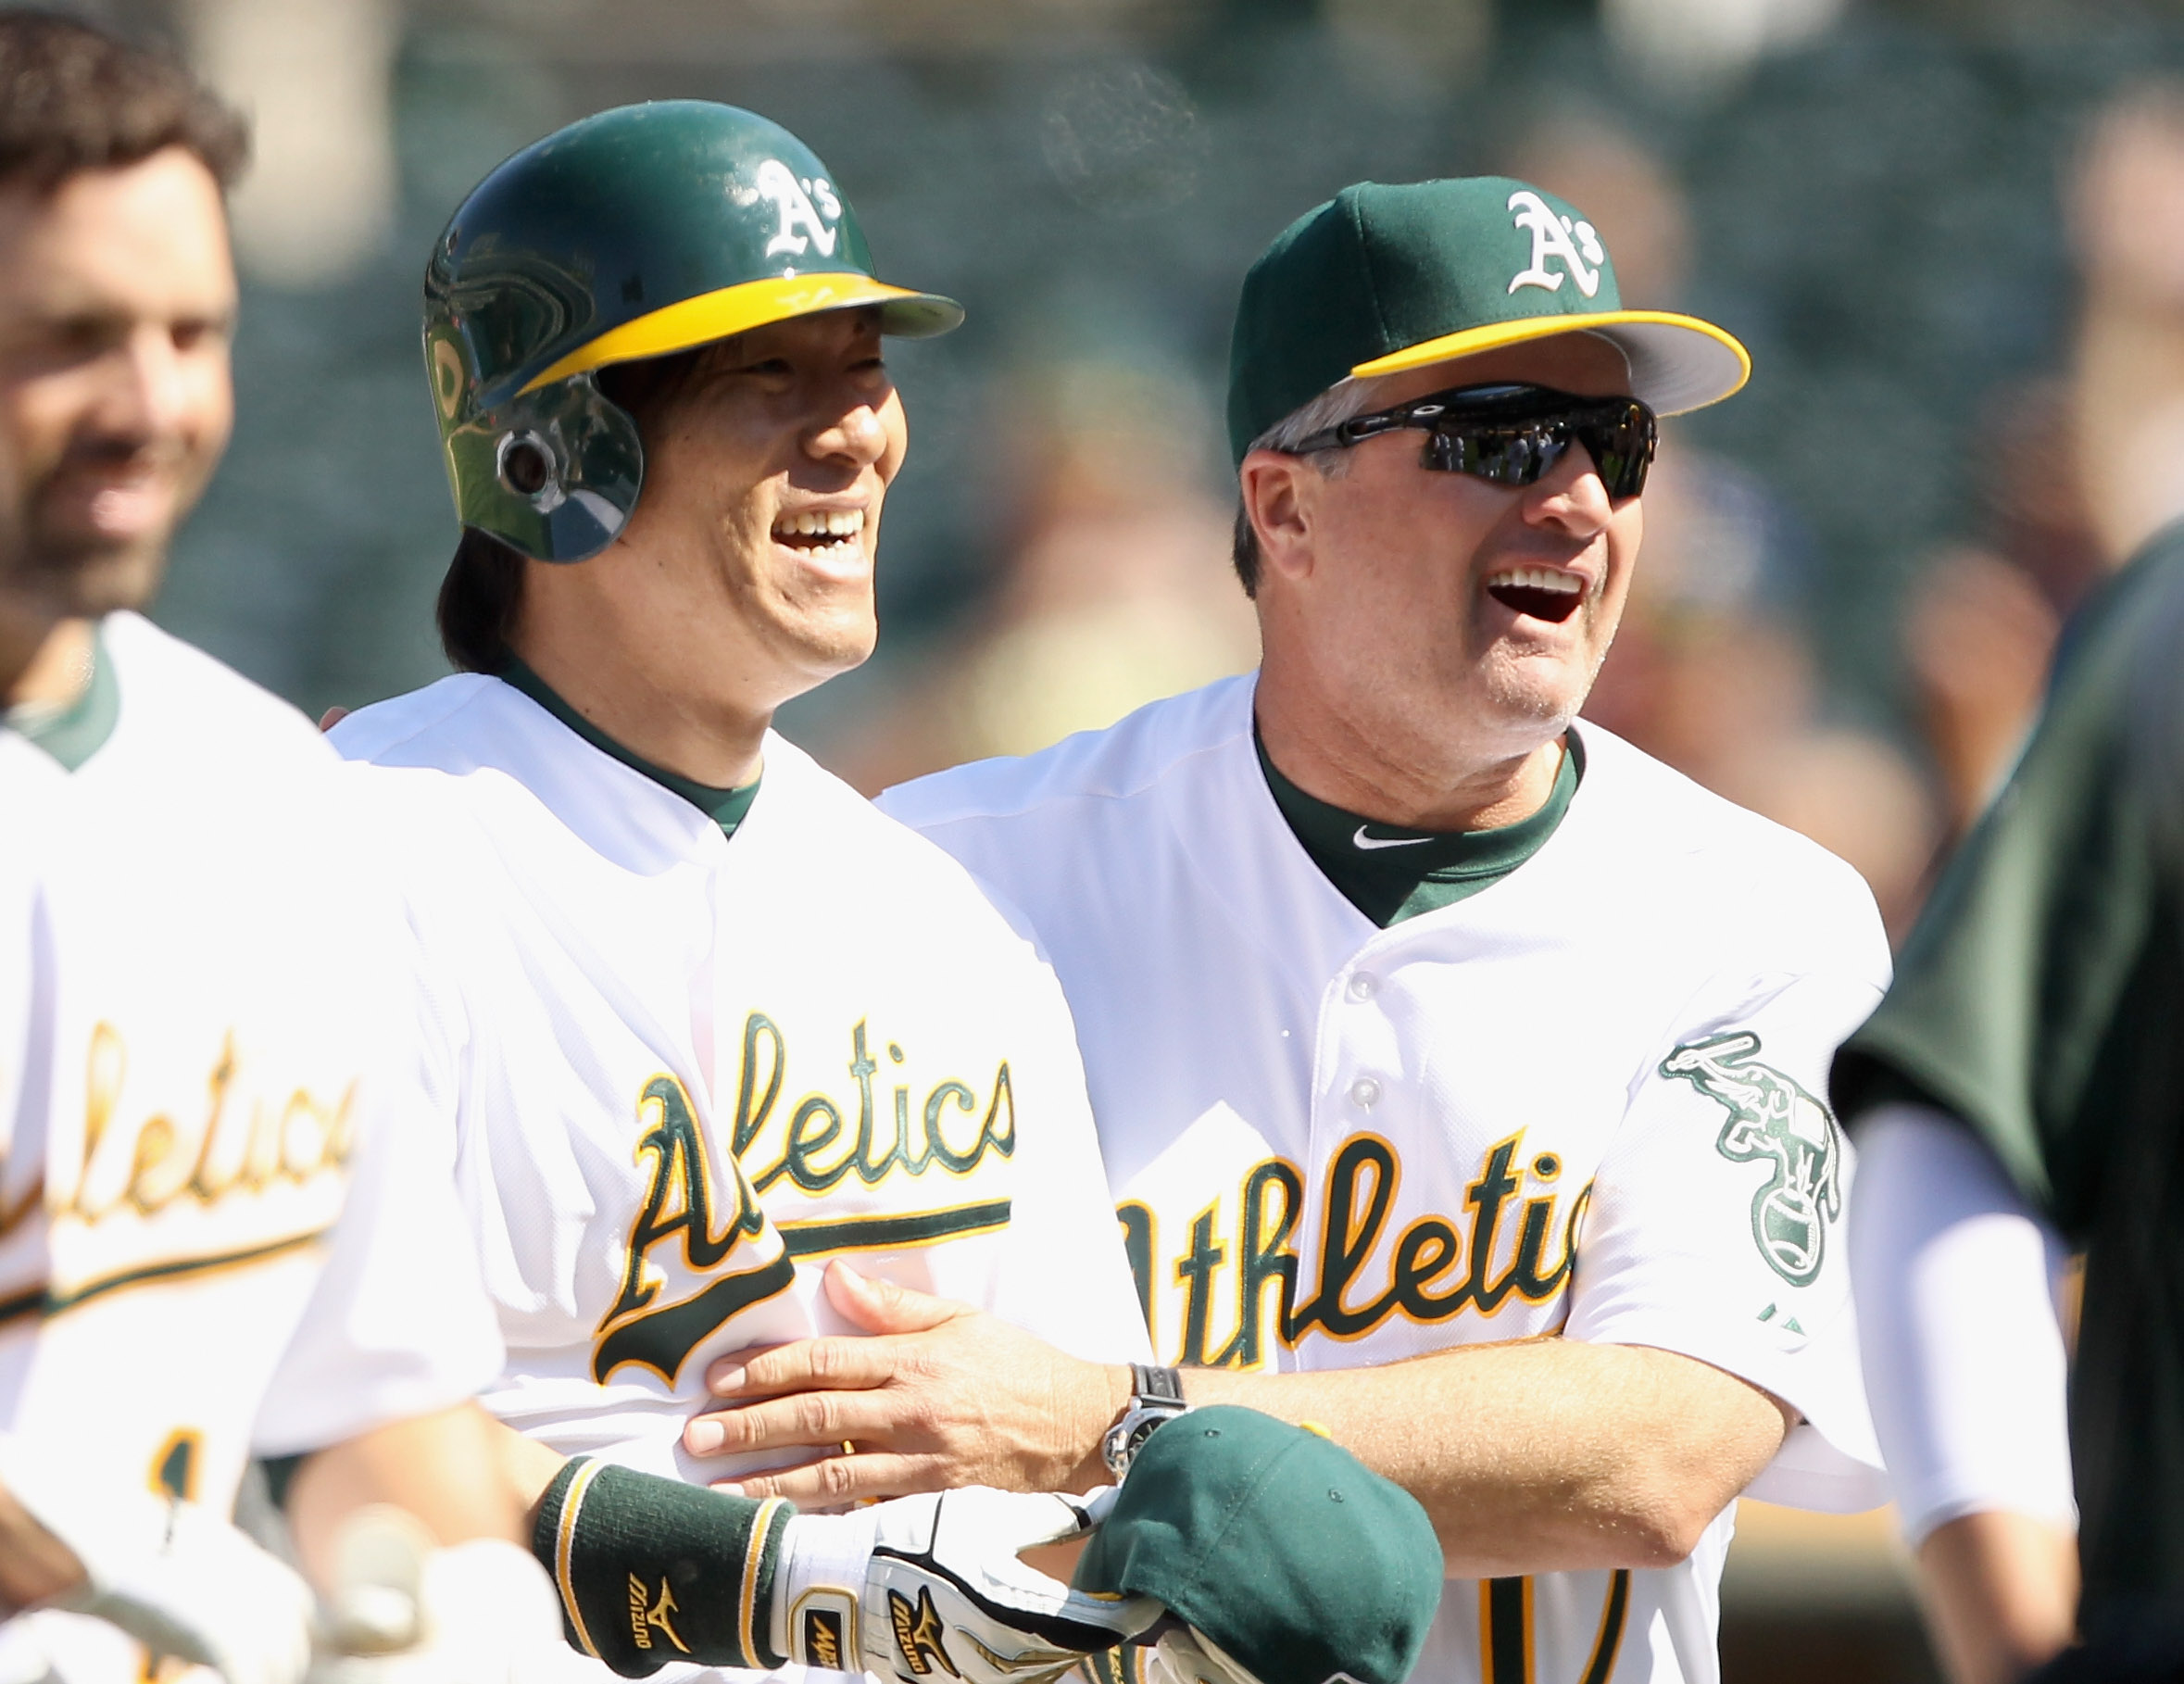 OAKLAND, CA - MAY 02:  Hideki Matsui #55 of the Oakland Athletics is congratulated by manager Bob Geren after he hit a walk off home run to win the game in the tenth inning against the Texas Rangers at Oakland-Alameda County Coliseum on May 2, 2011 in Oak